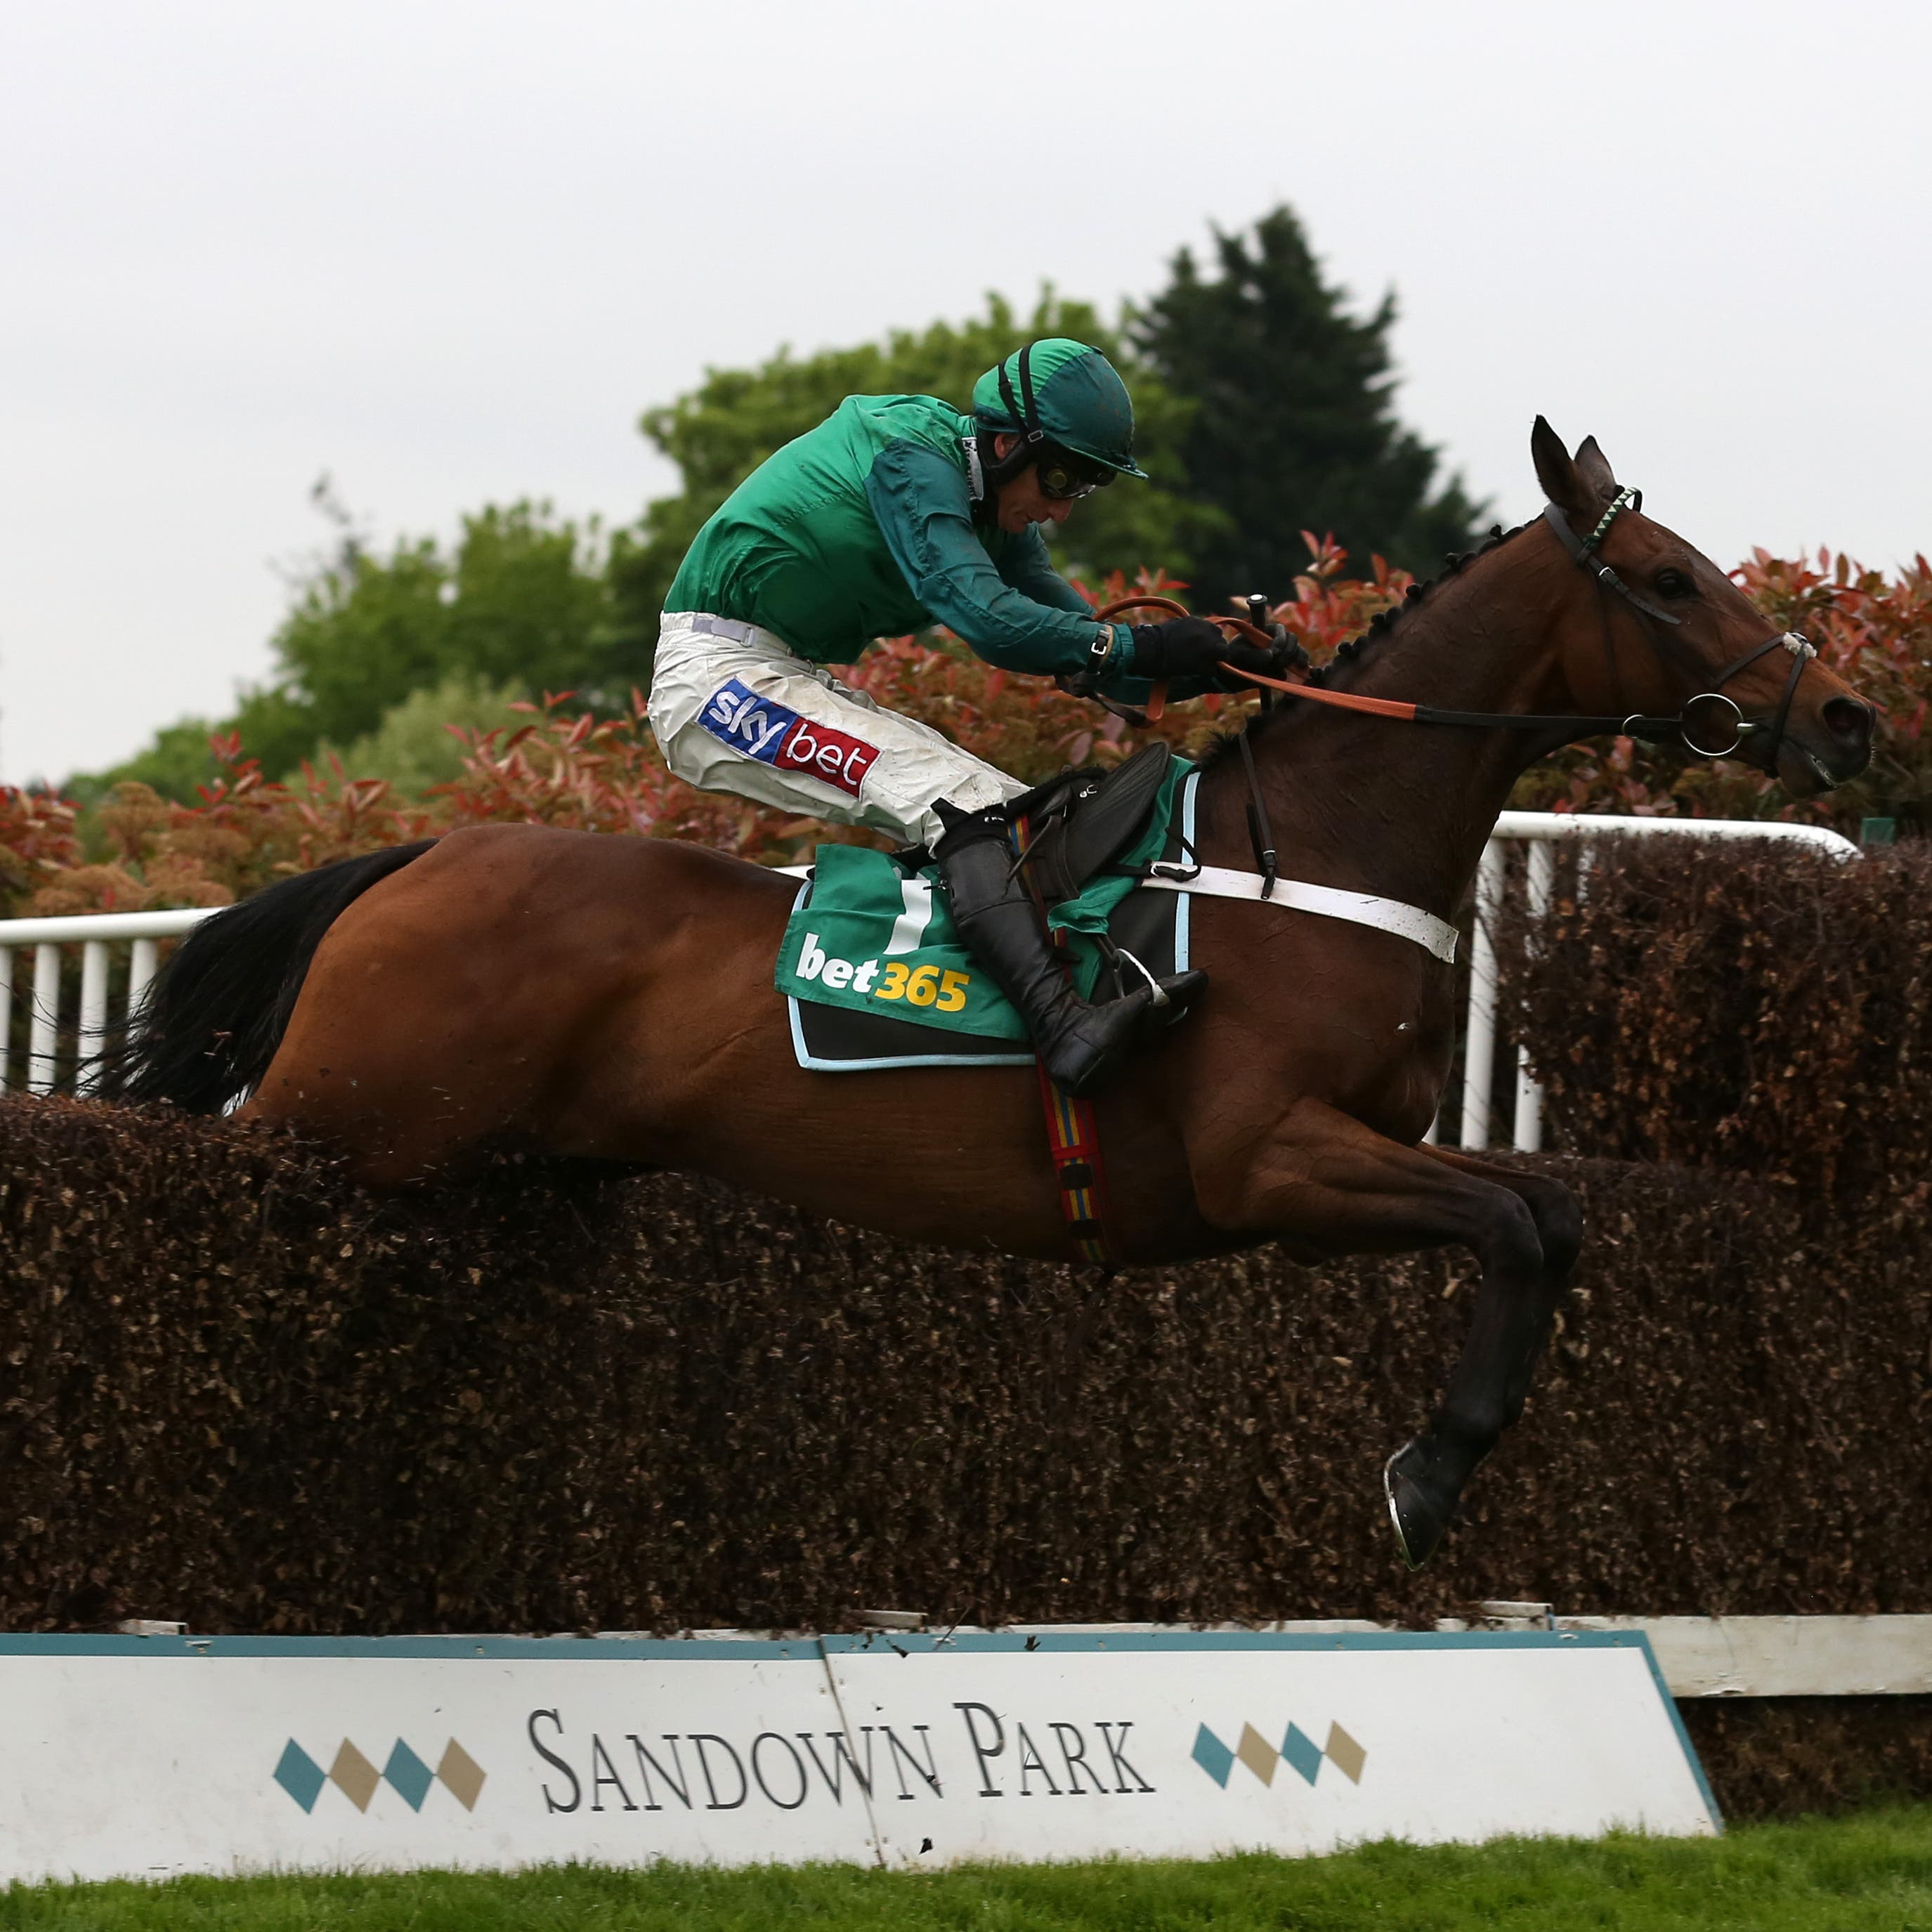 Top Notch could turn into a possible King George contender